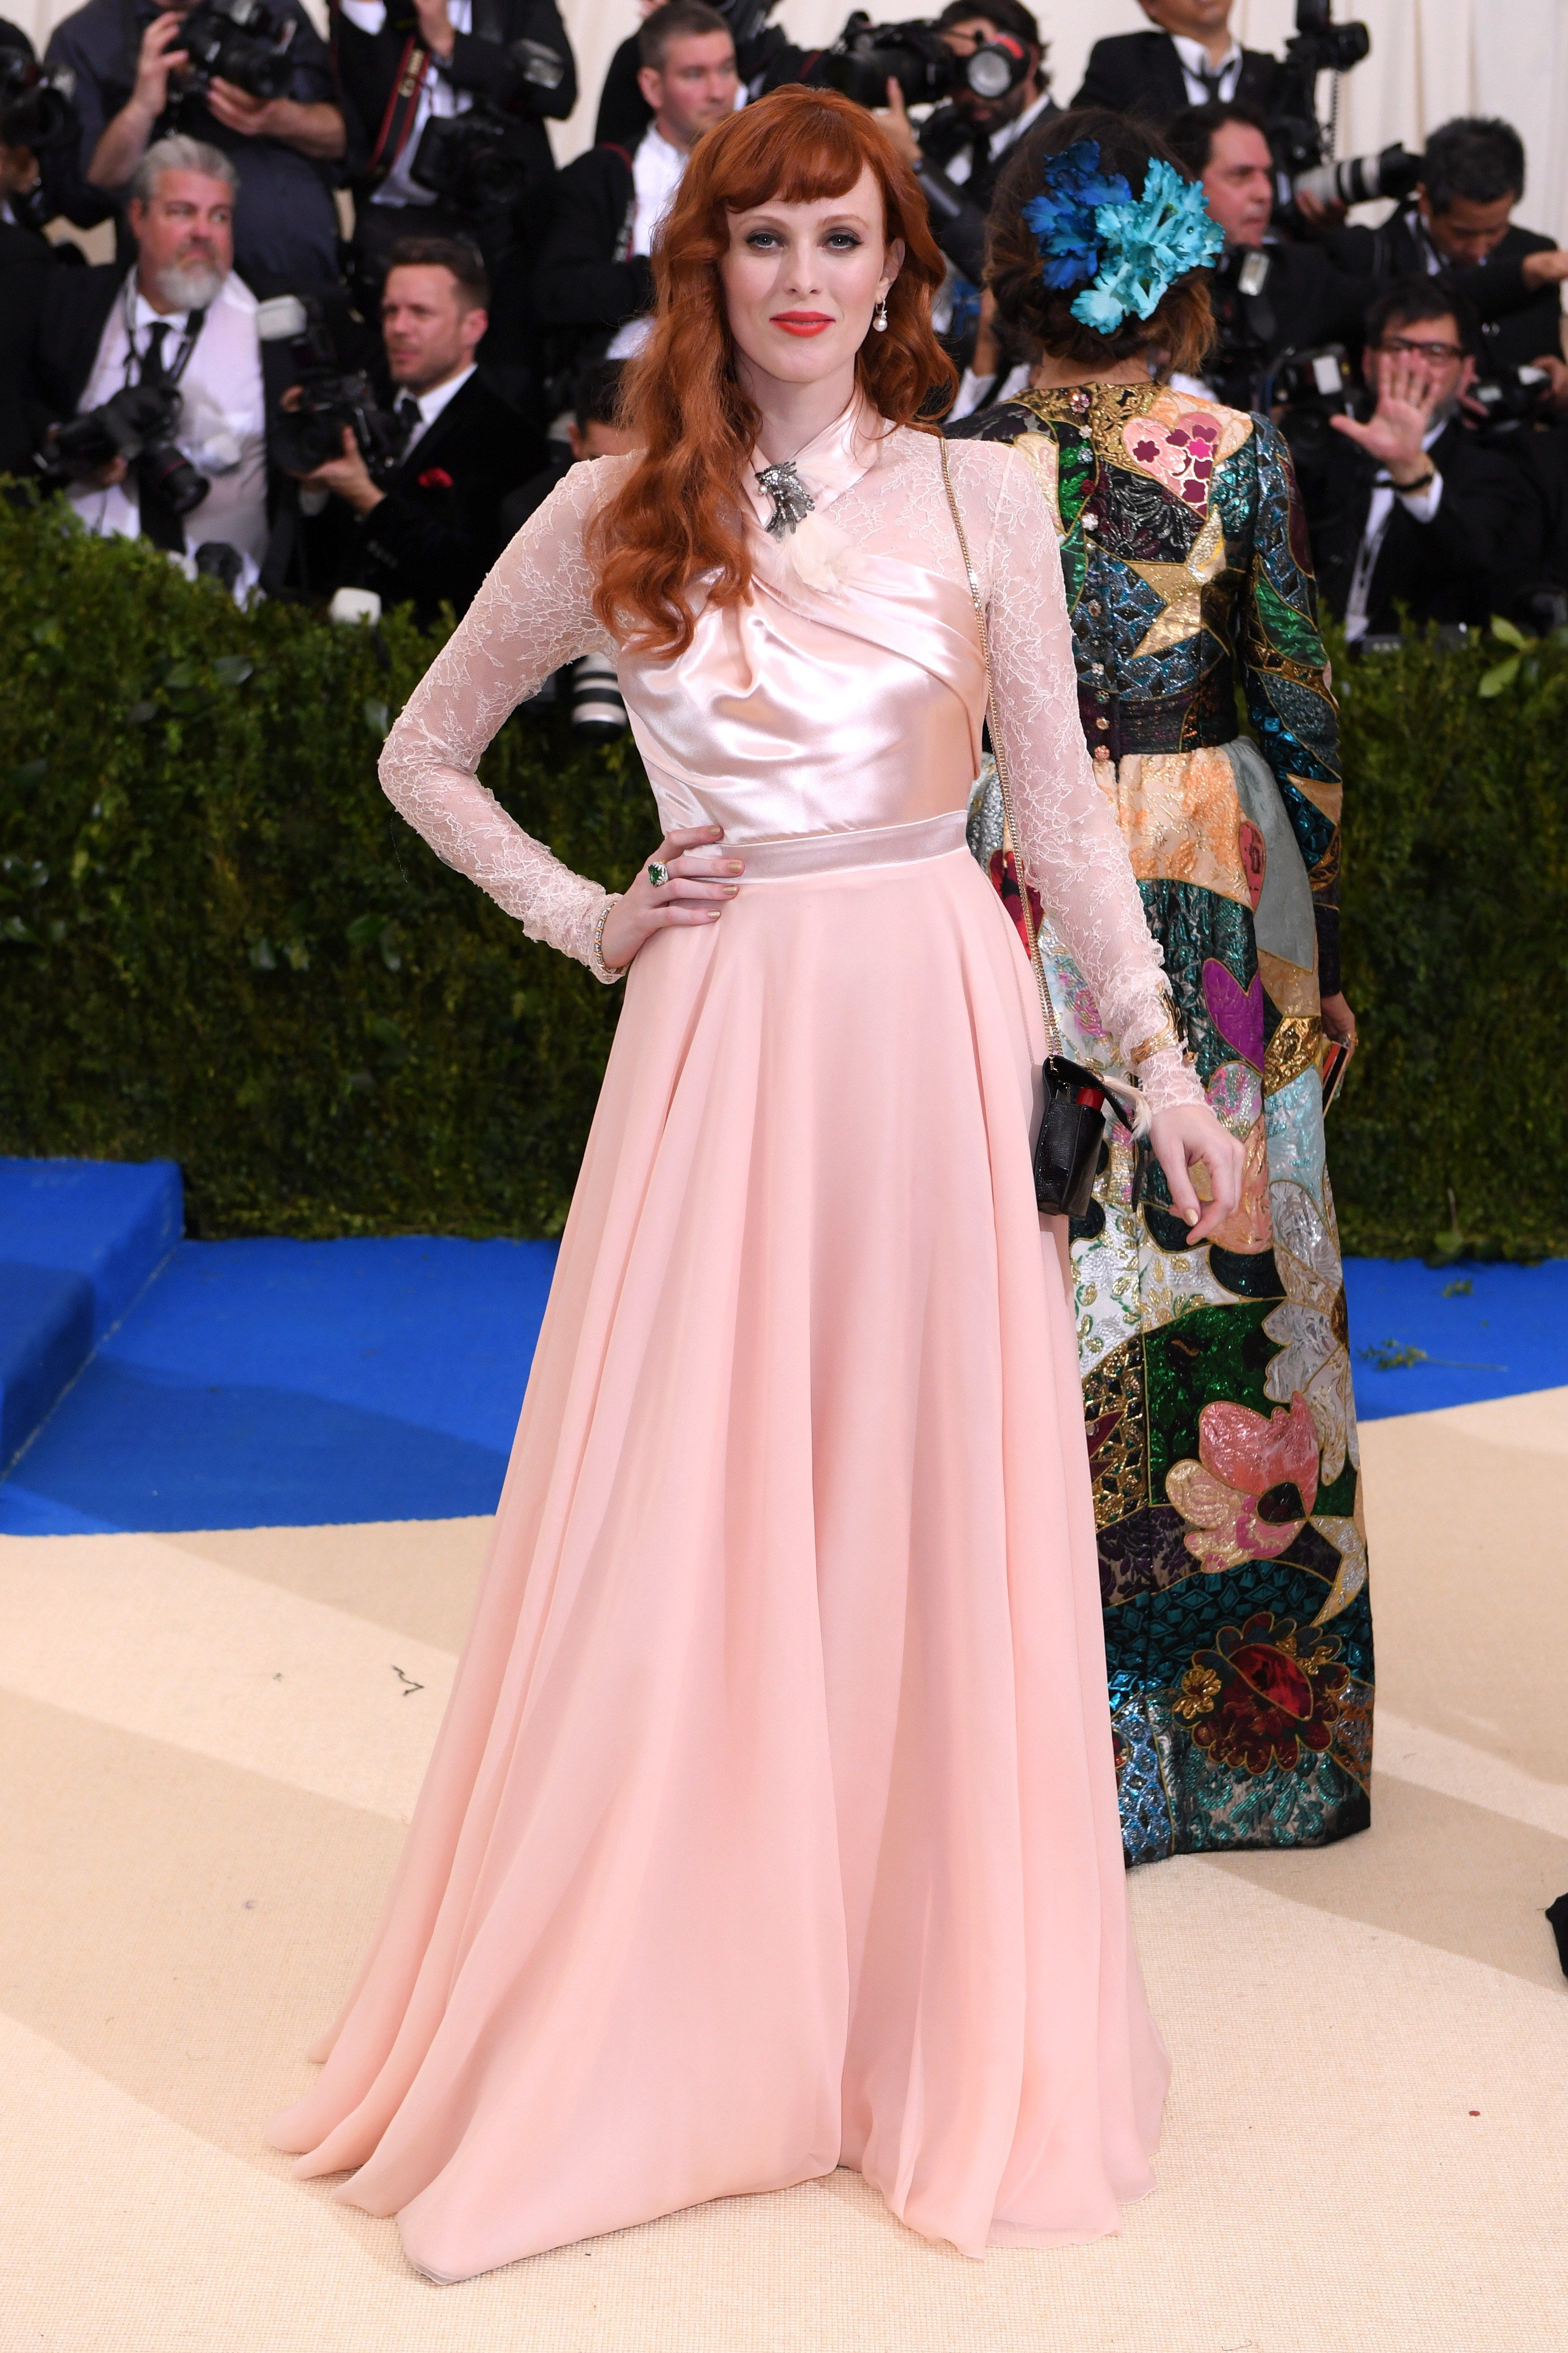 Met Gala 2017 Red Carpet Live: All the Celebrity Dresses and Fashion ...